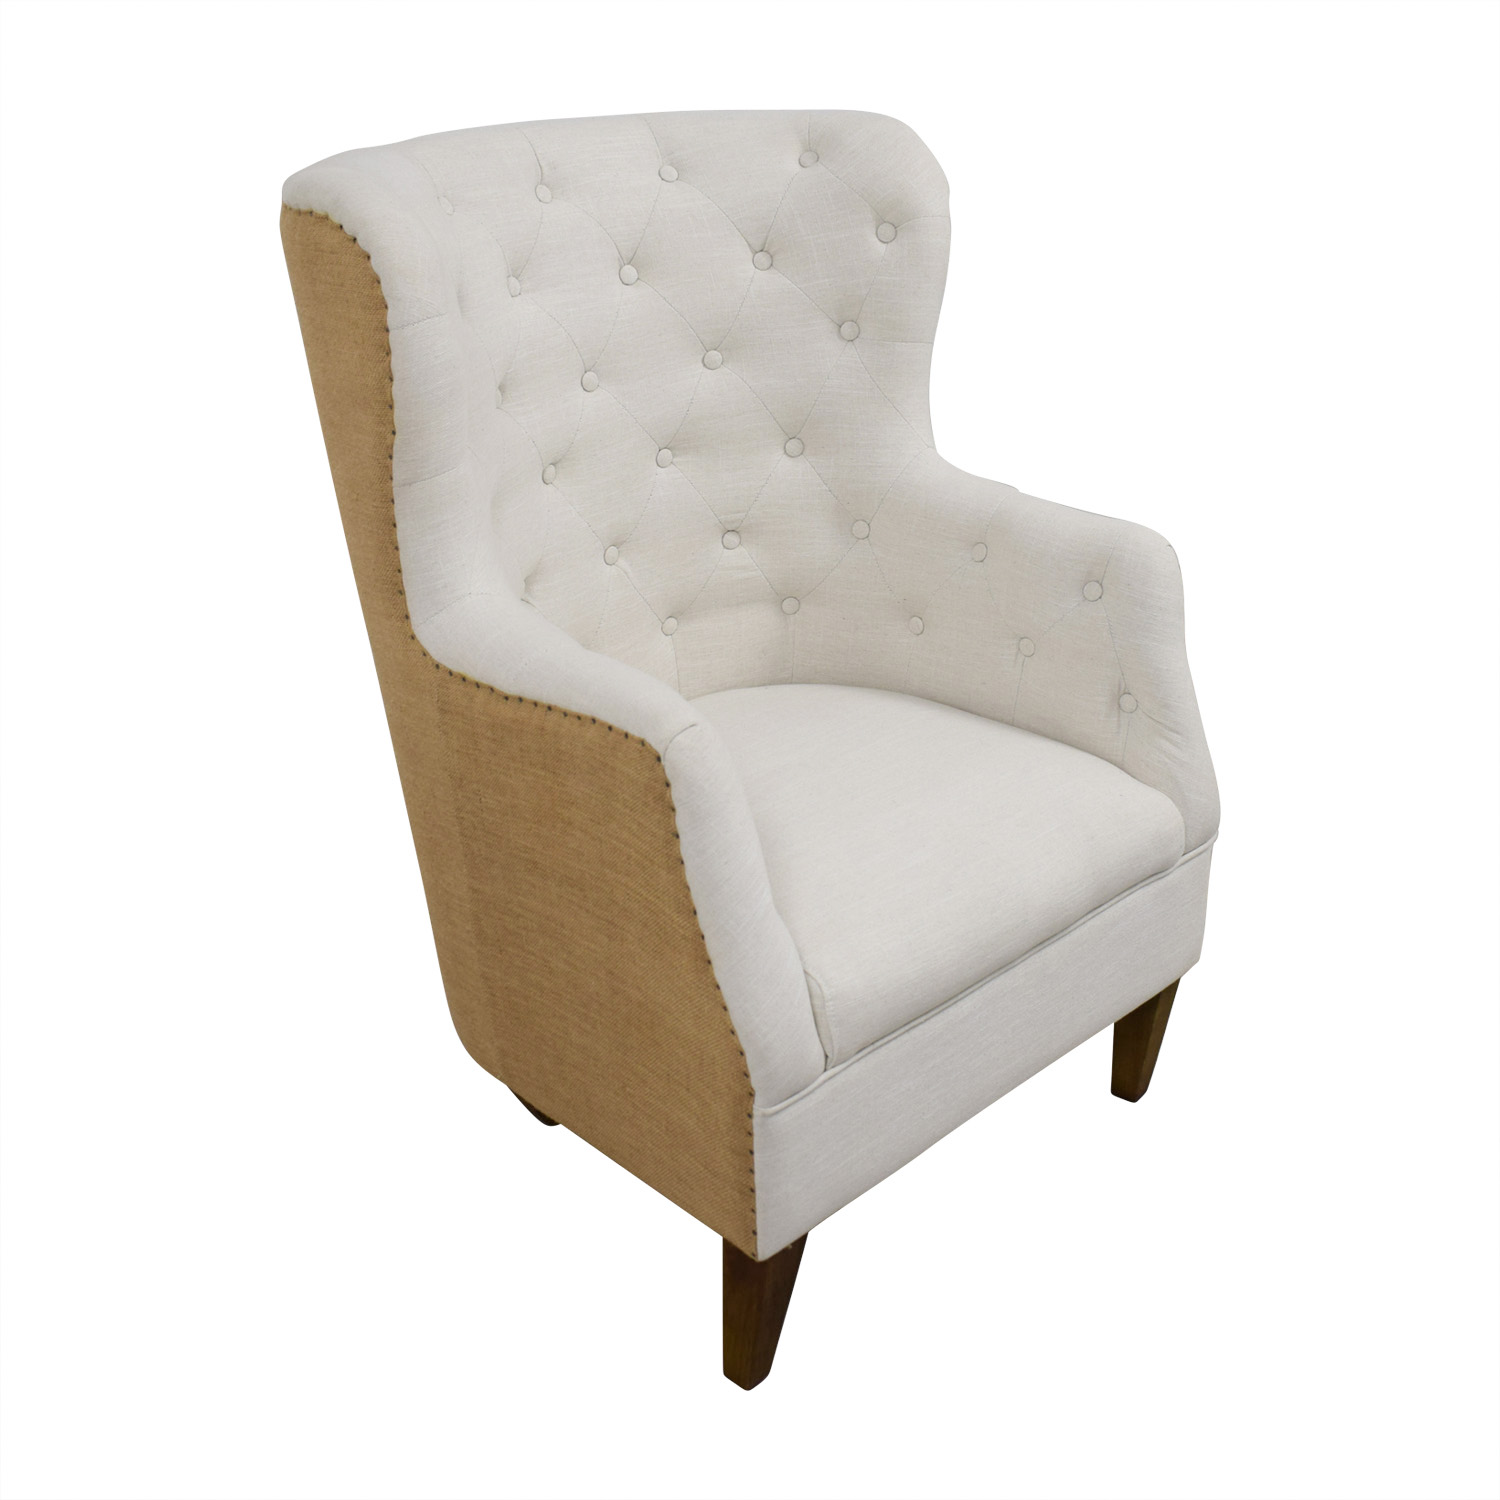 buy Classic Concepts White Tufted and Tan Back Wing Back Accent Chair Classic Concepts Chairs